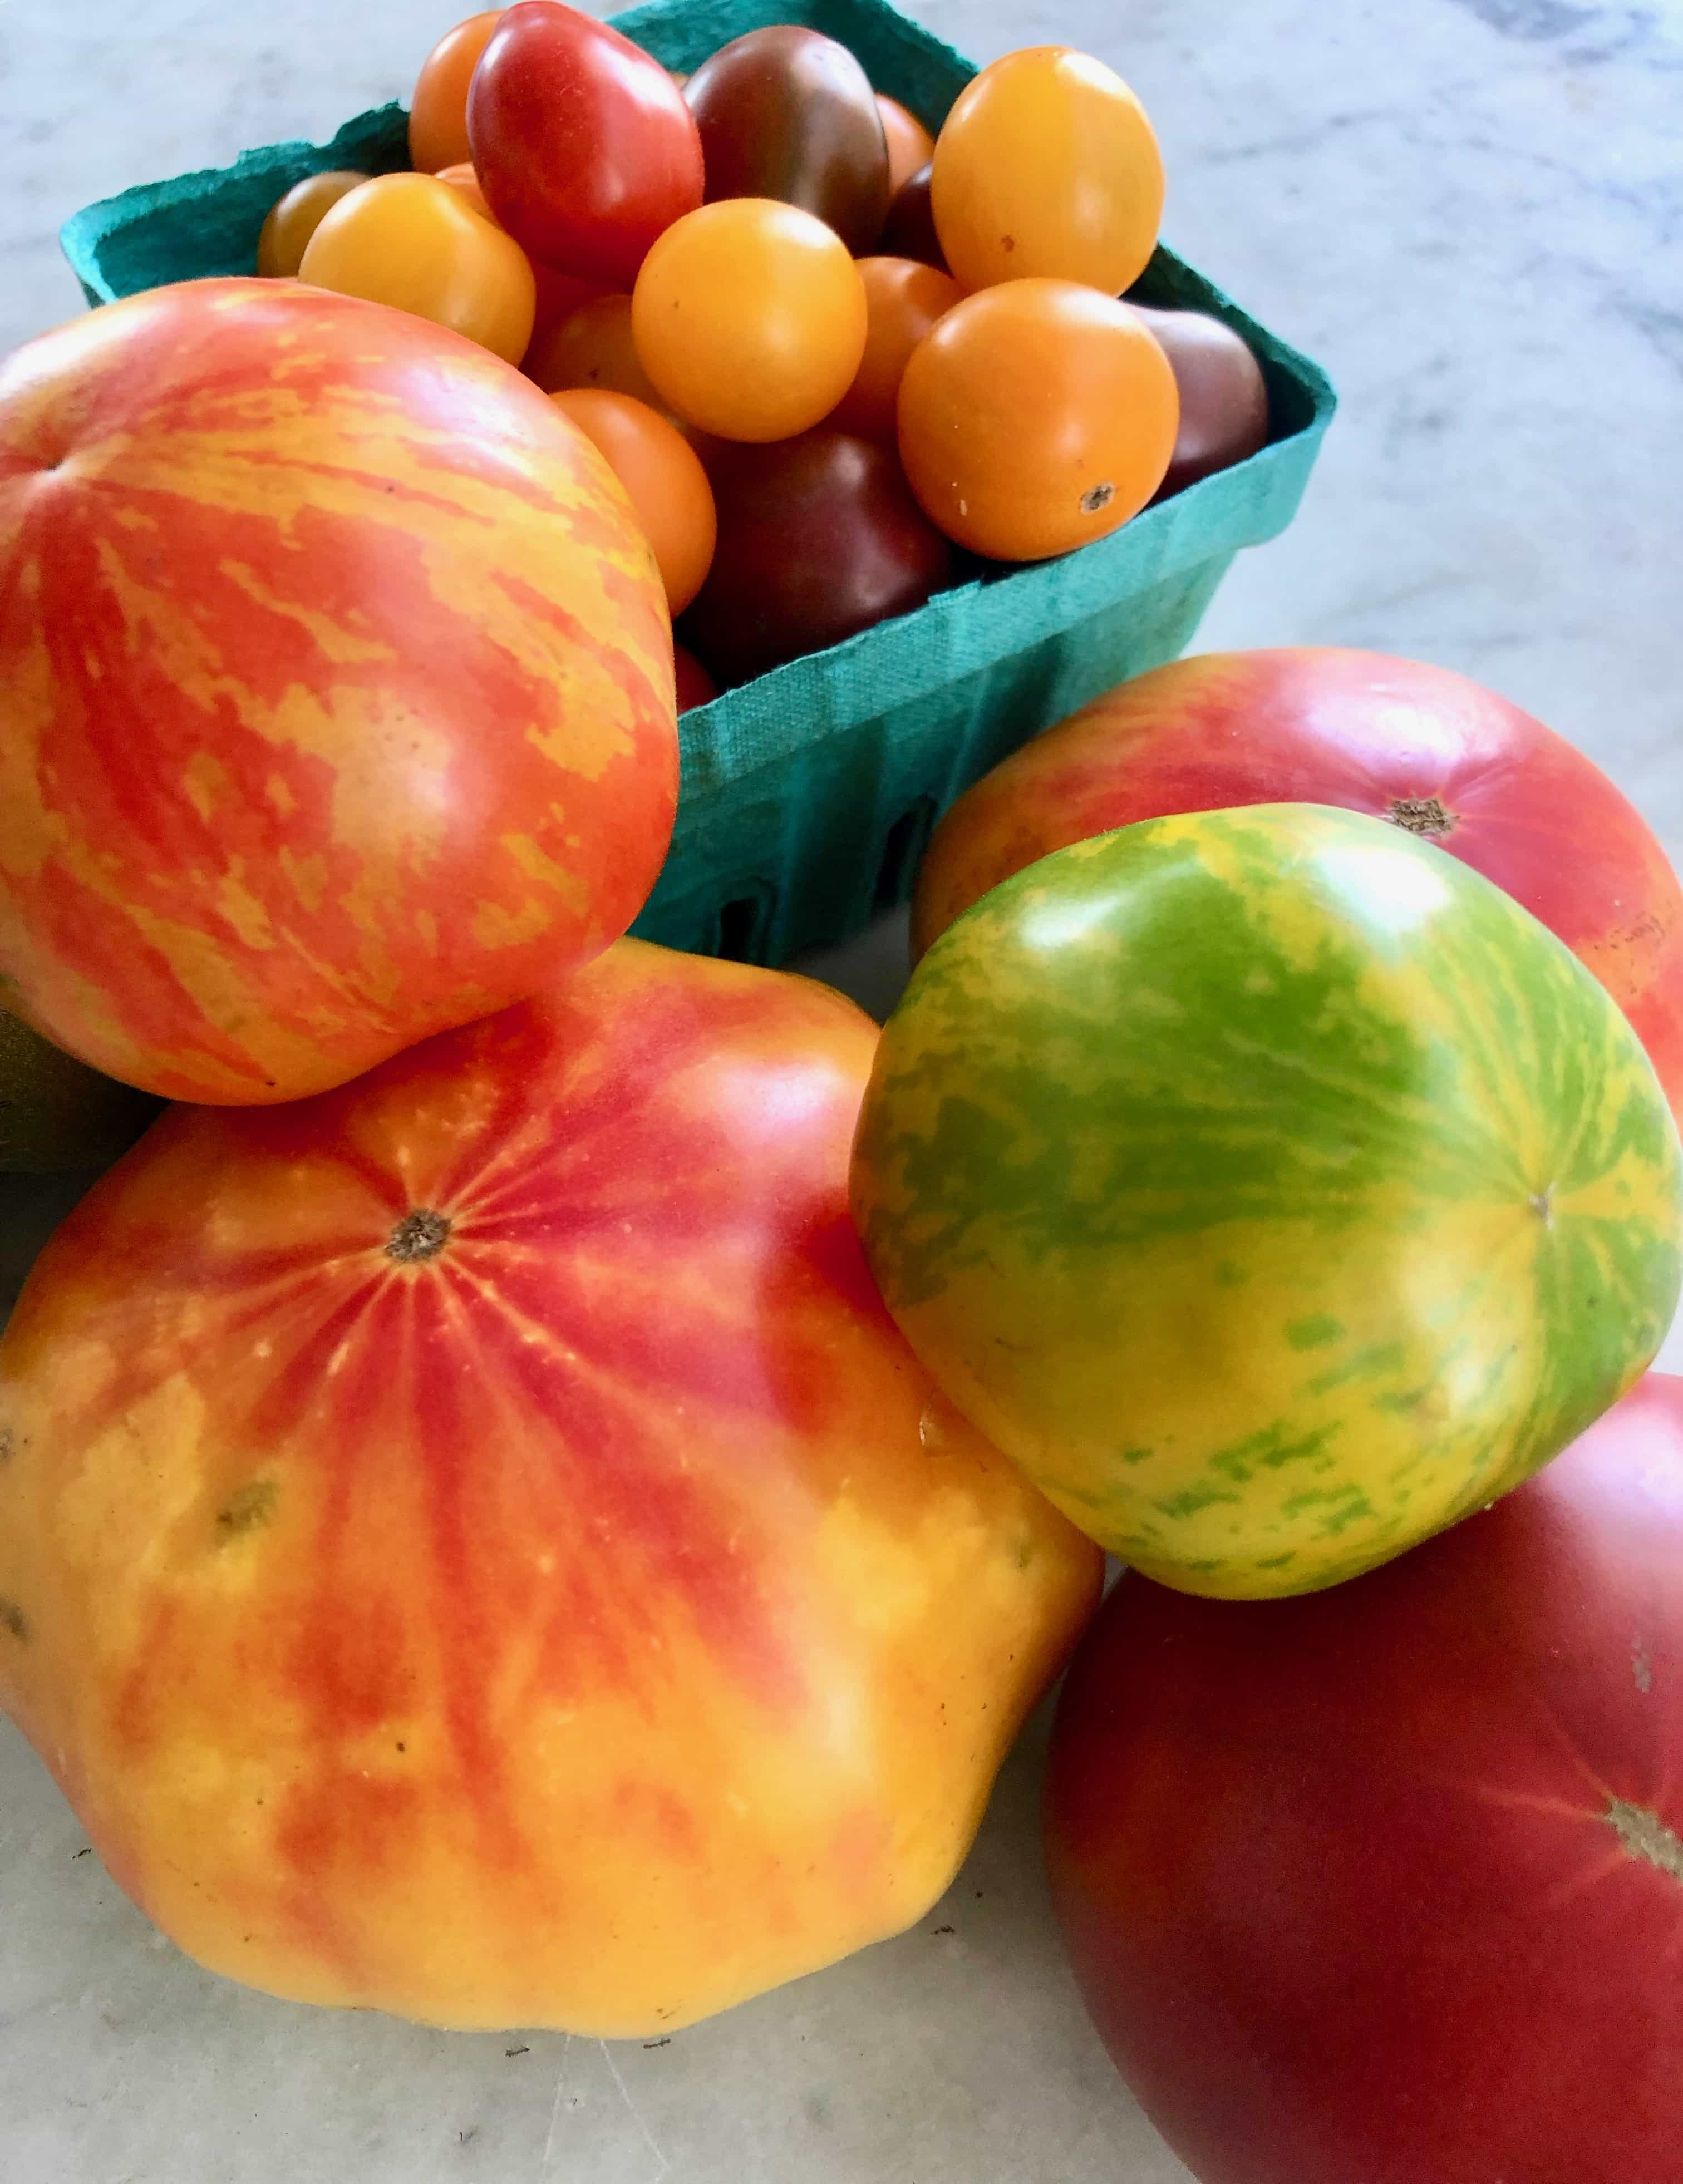 heirloom tomatoes from the Farmer's Market